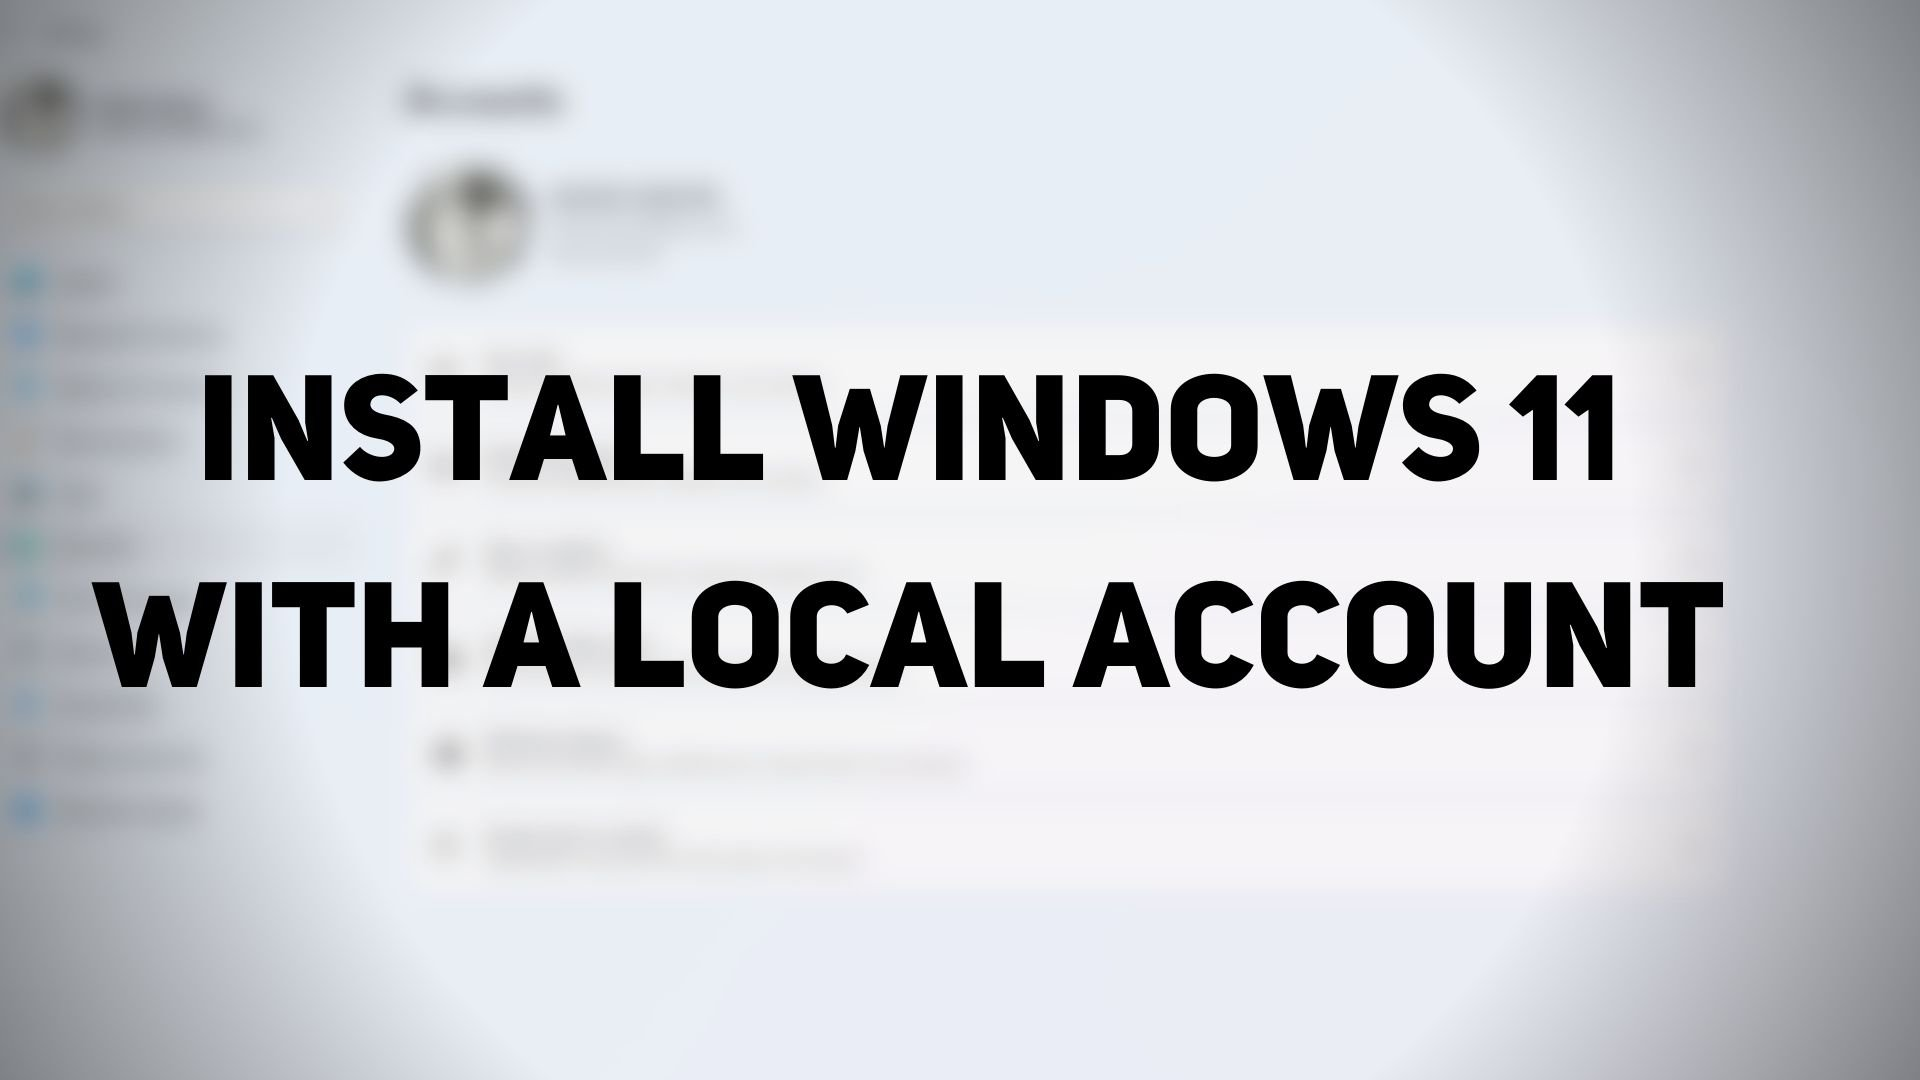 Install Windows 11 with a Local Account